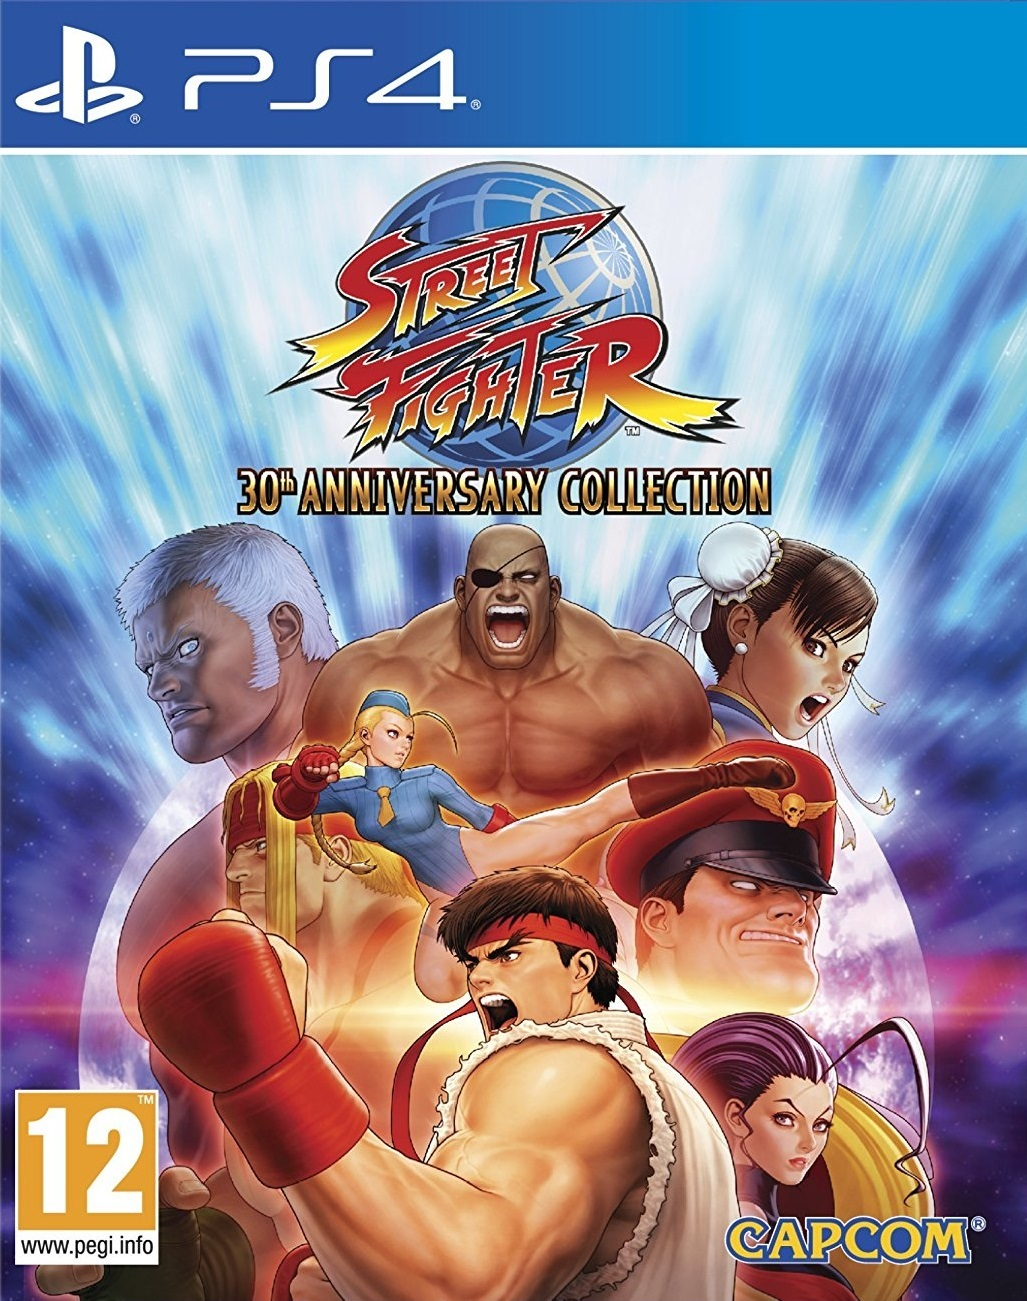 Street Fighter 30th Anniversary Collection for PS4 image